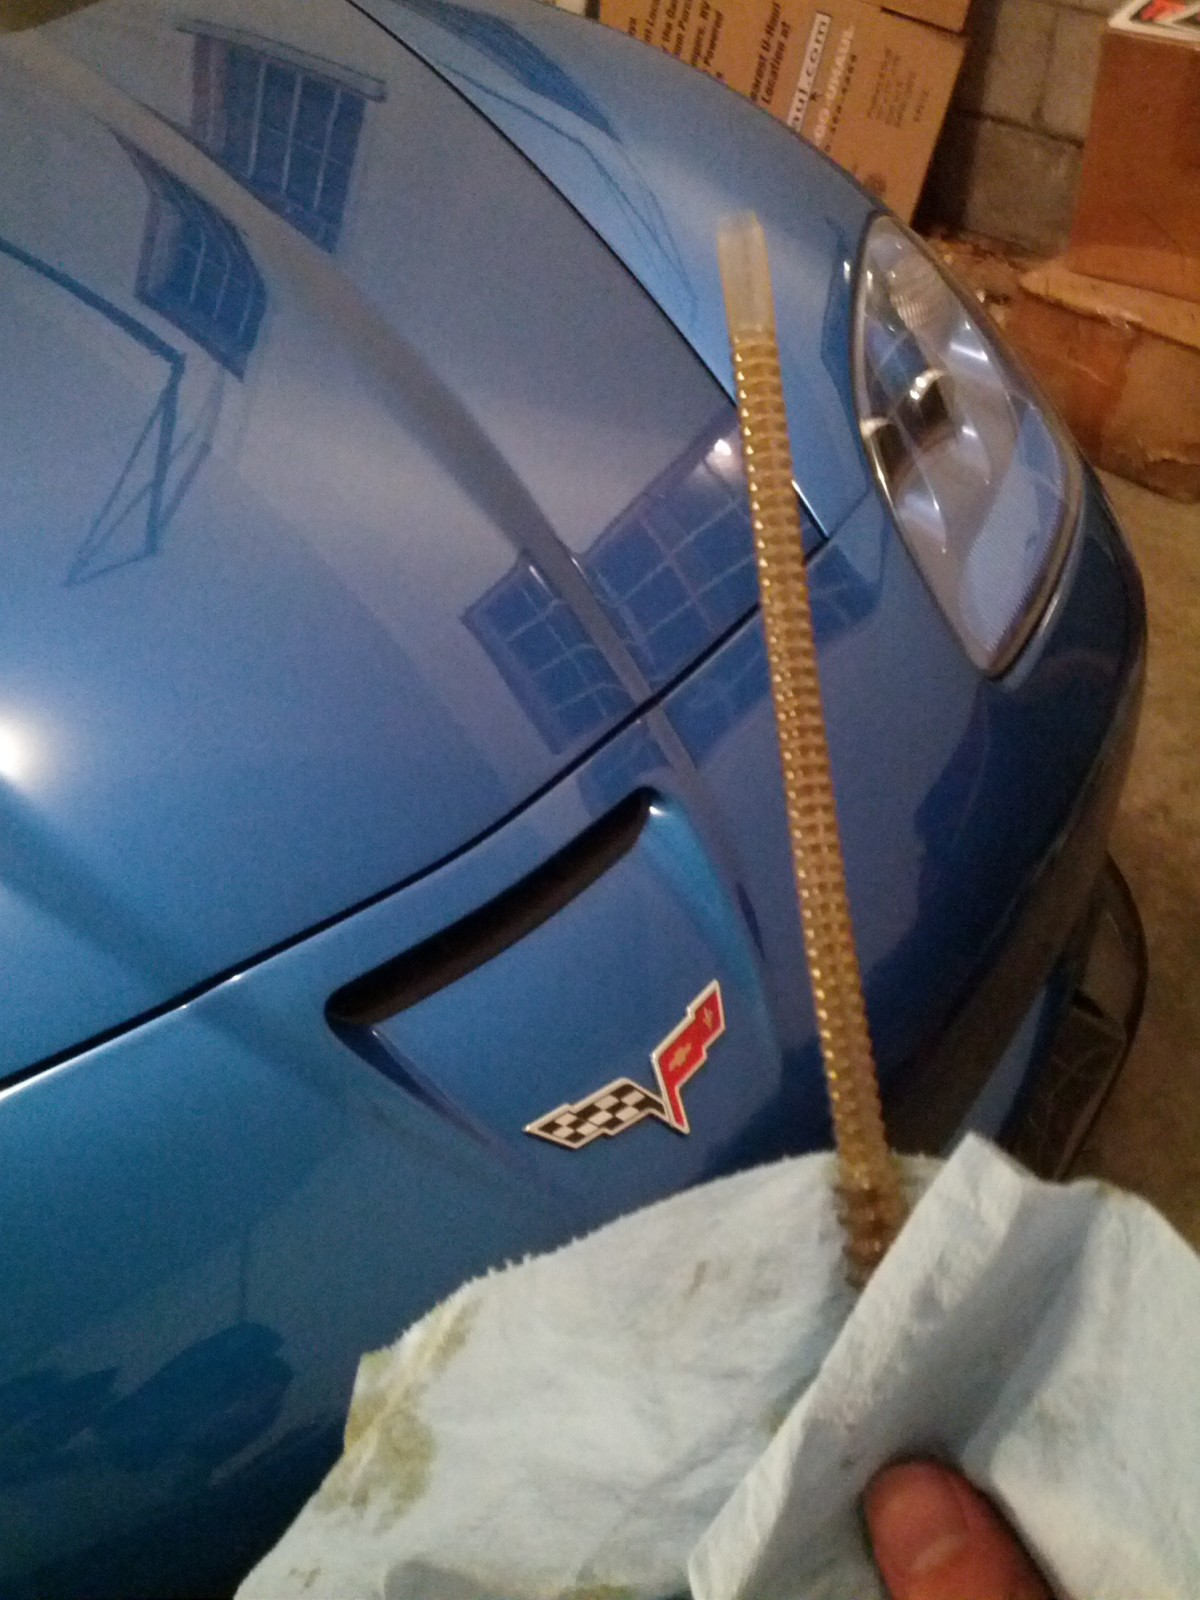 How To Remove Oil From a Z06 The Wrong Way